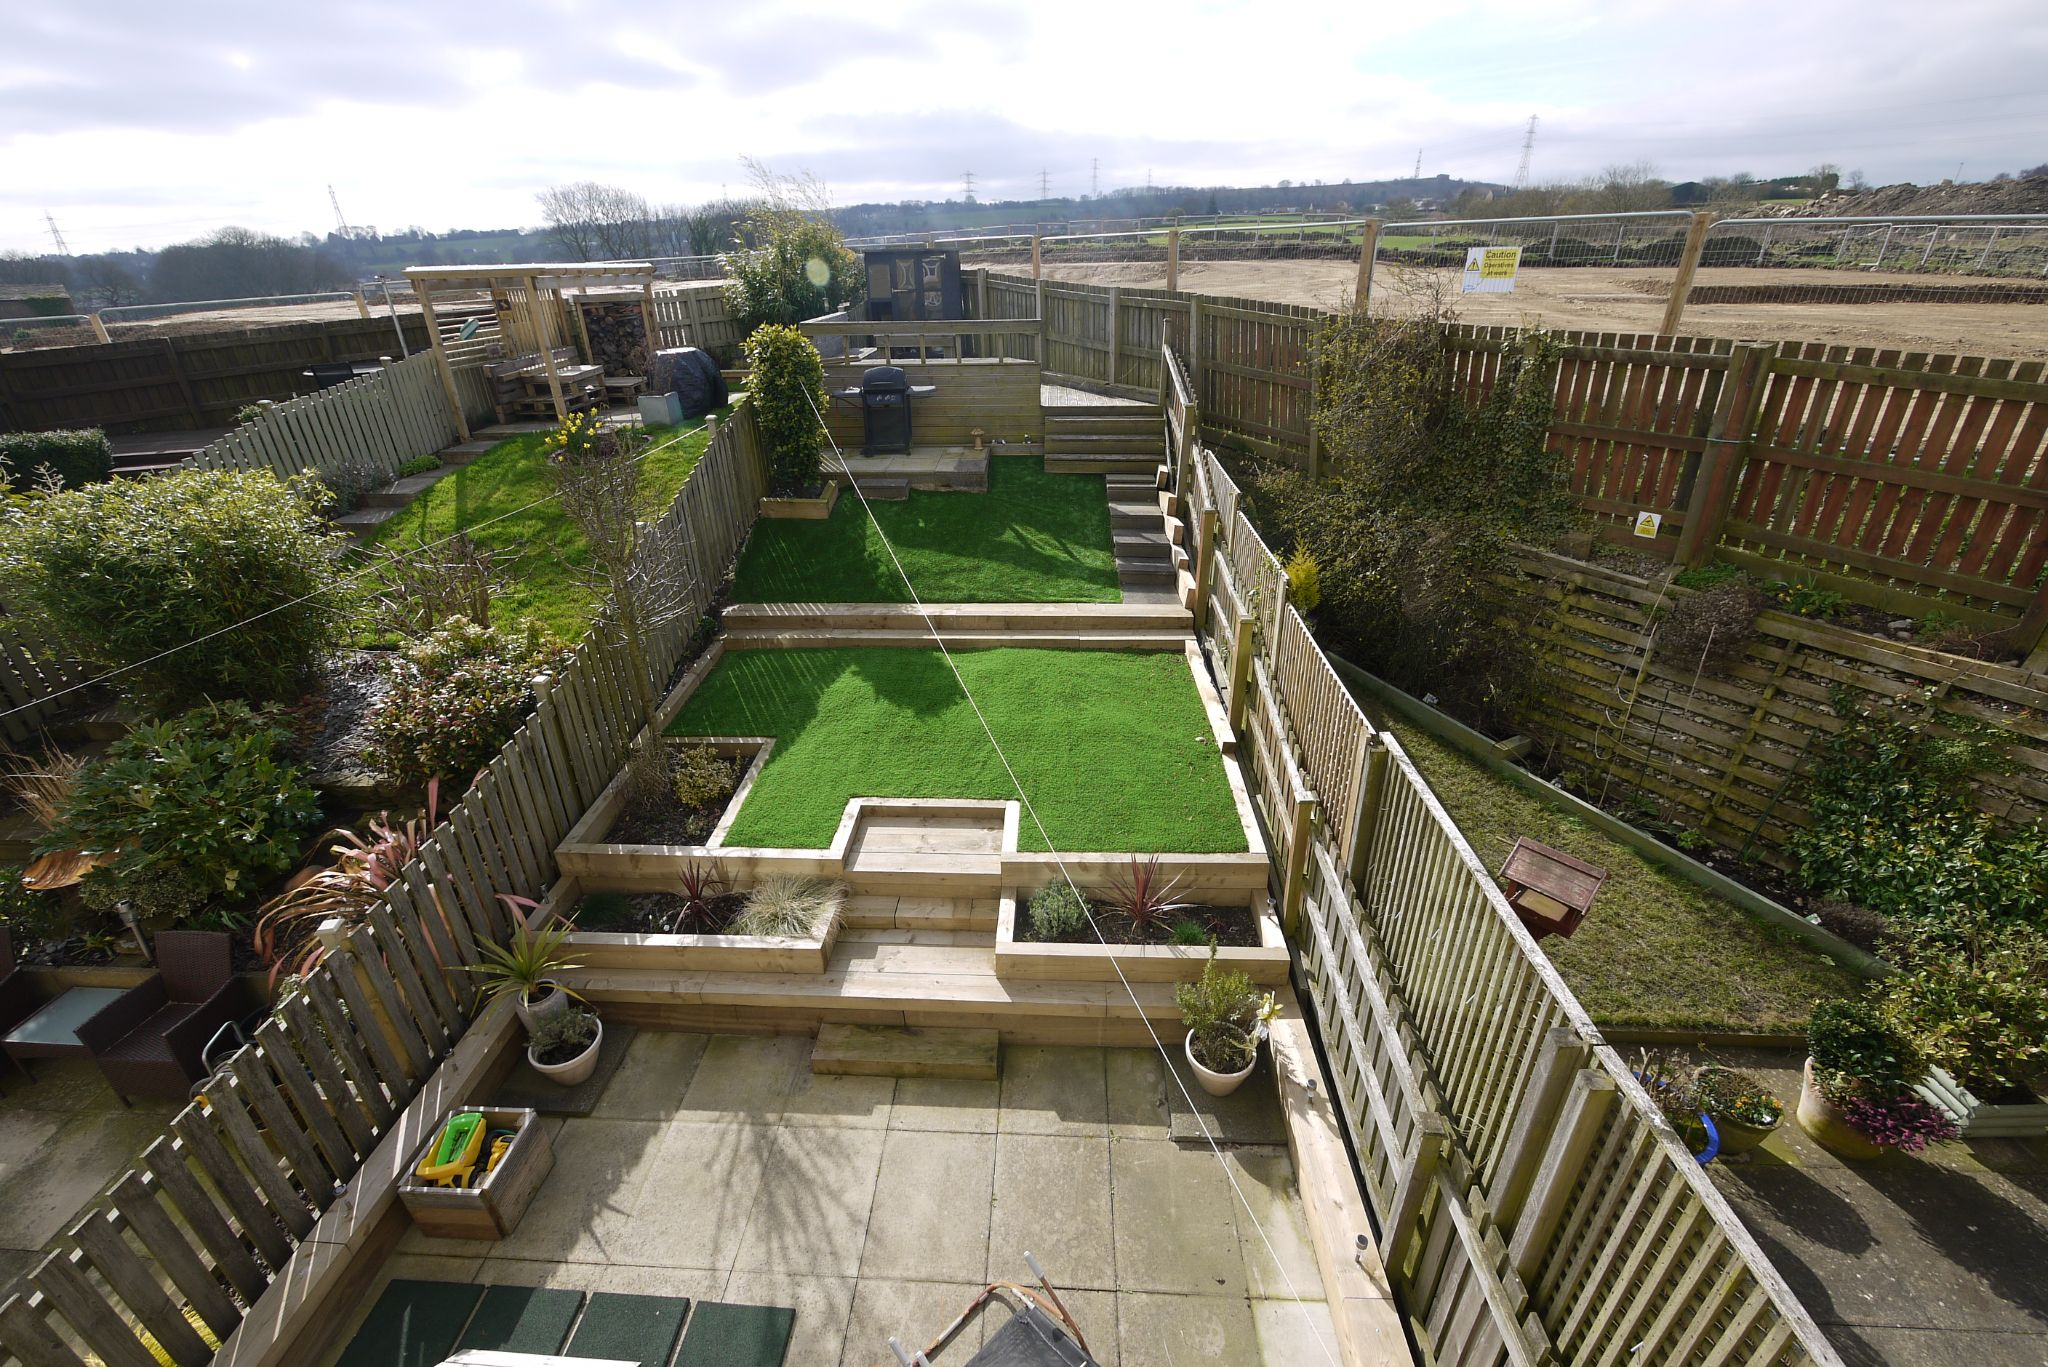 4 bedroom town house SSTC in Brighouse - Garden 2.